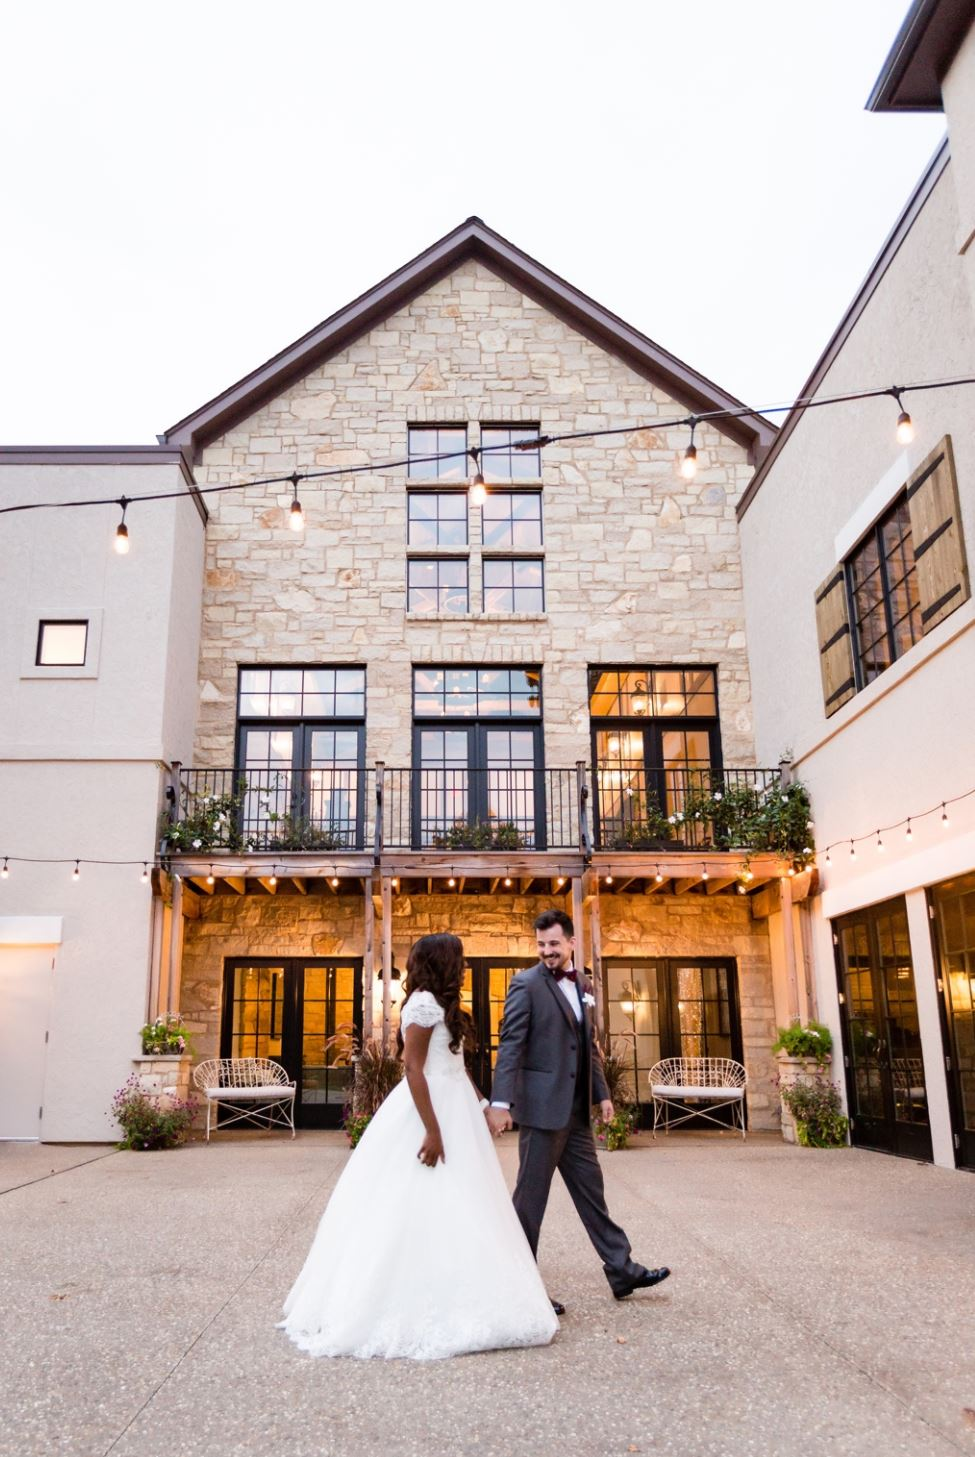 A wedding couple is holding hands at the Silver Oaks Chateau in Missouri.